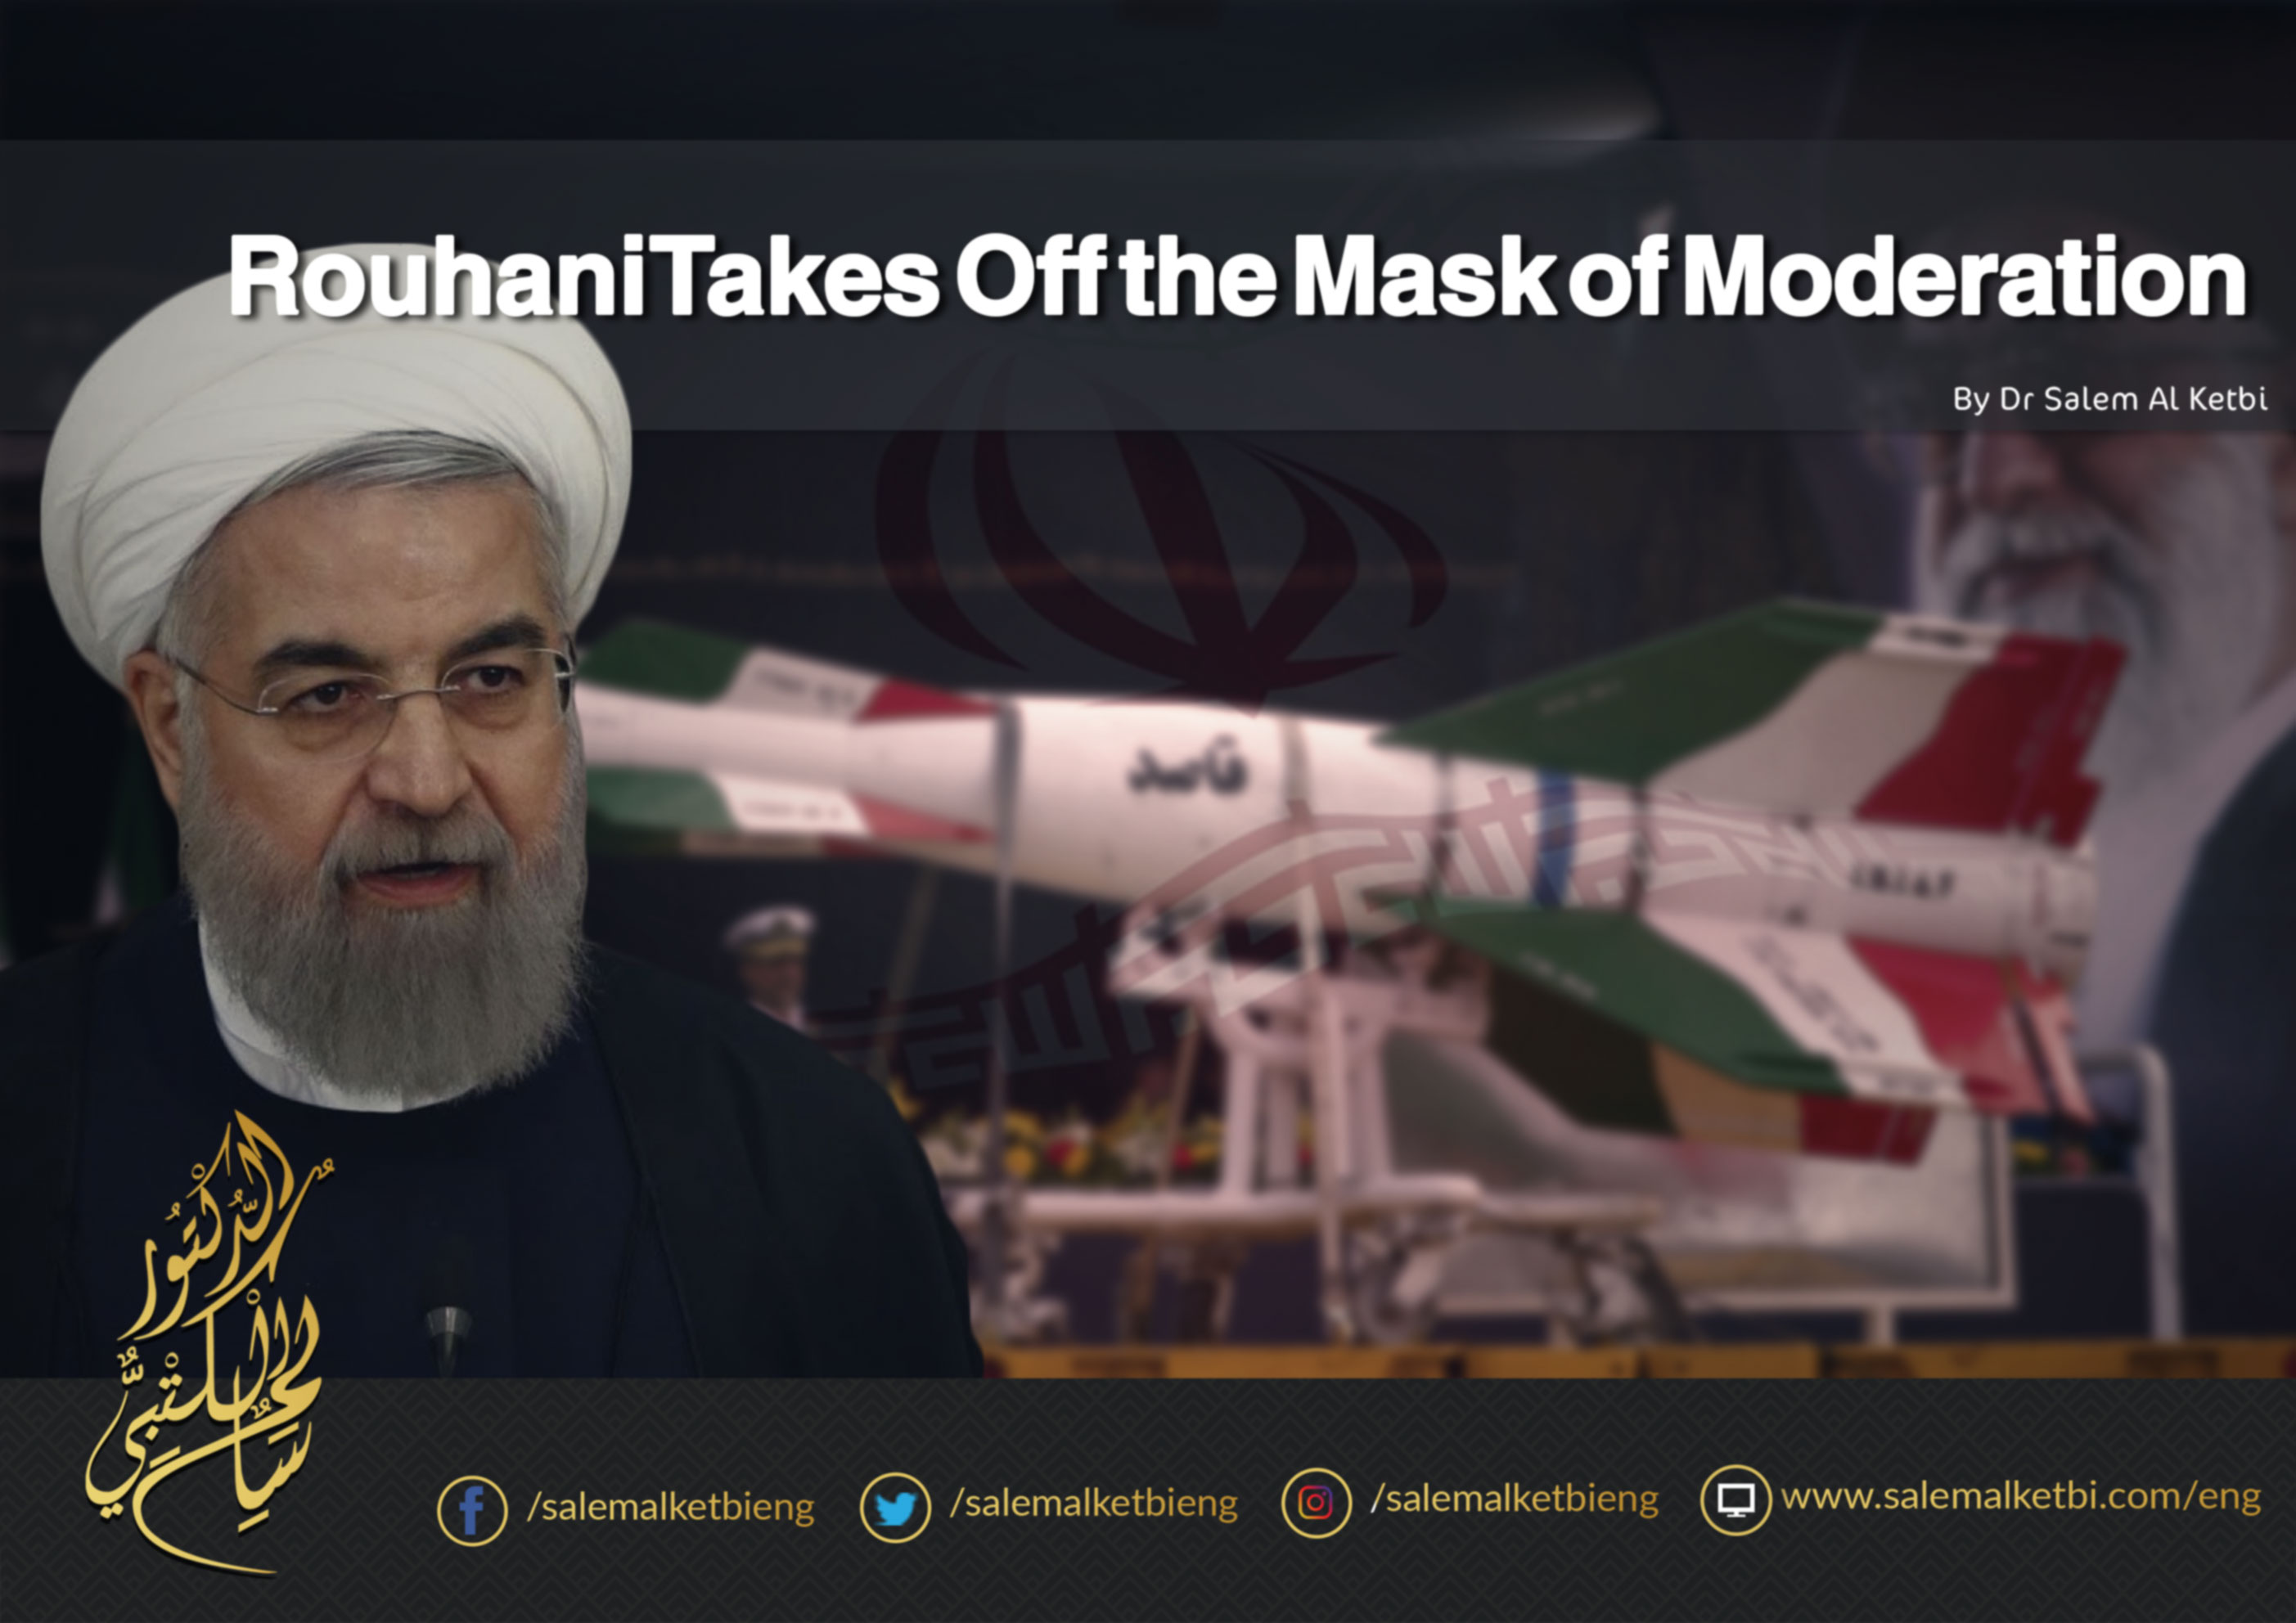 Rouhani Takes Off the Mask of Moderation